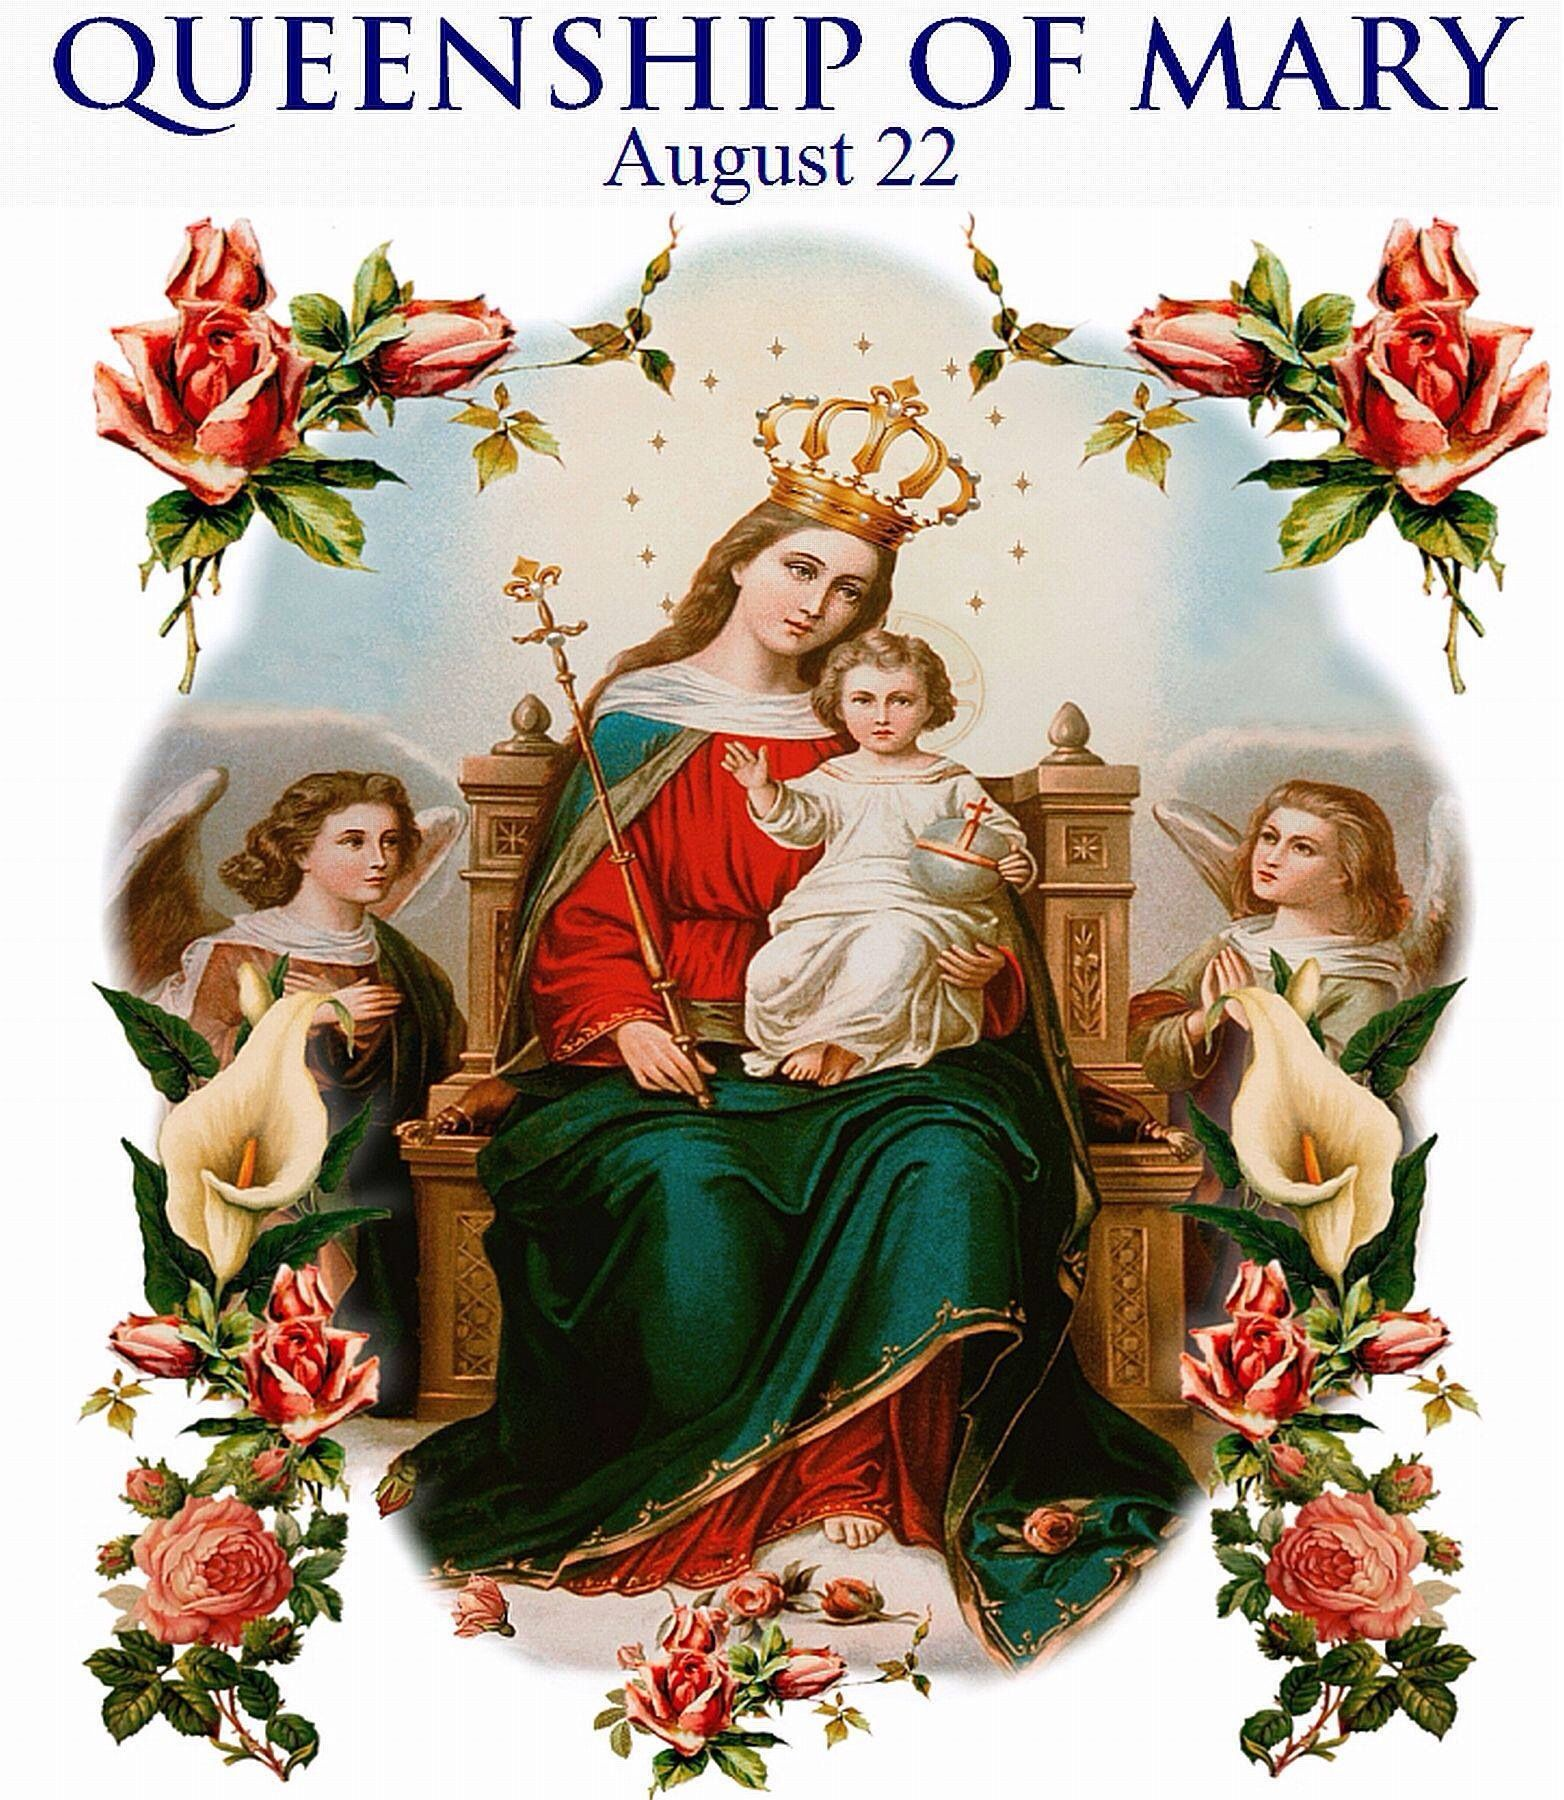 Queenship of mary feast day virgin mary pinterest mary queenship of mary feast day kristyandbryce Choice Image